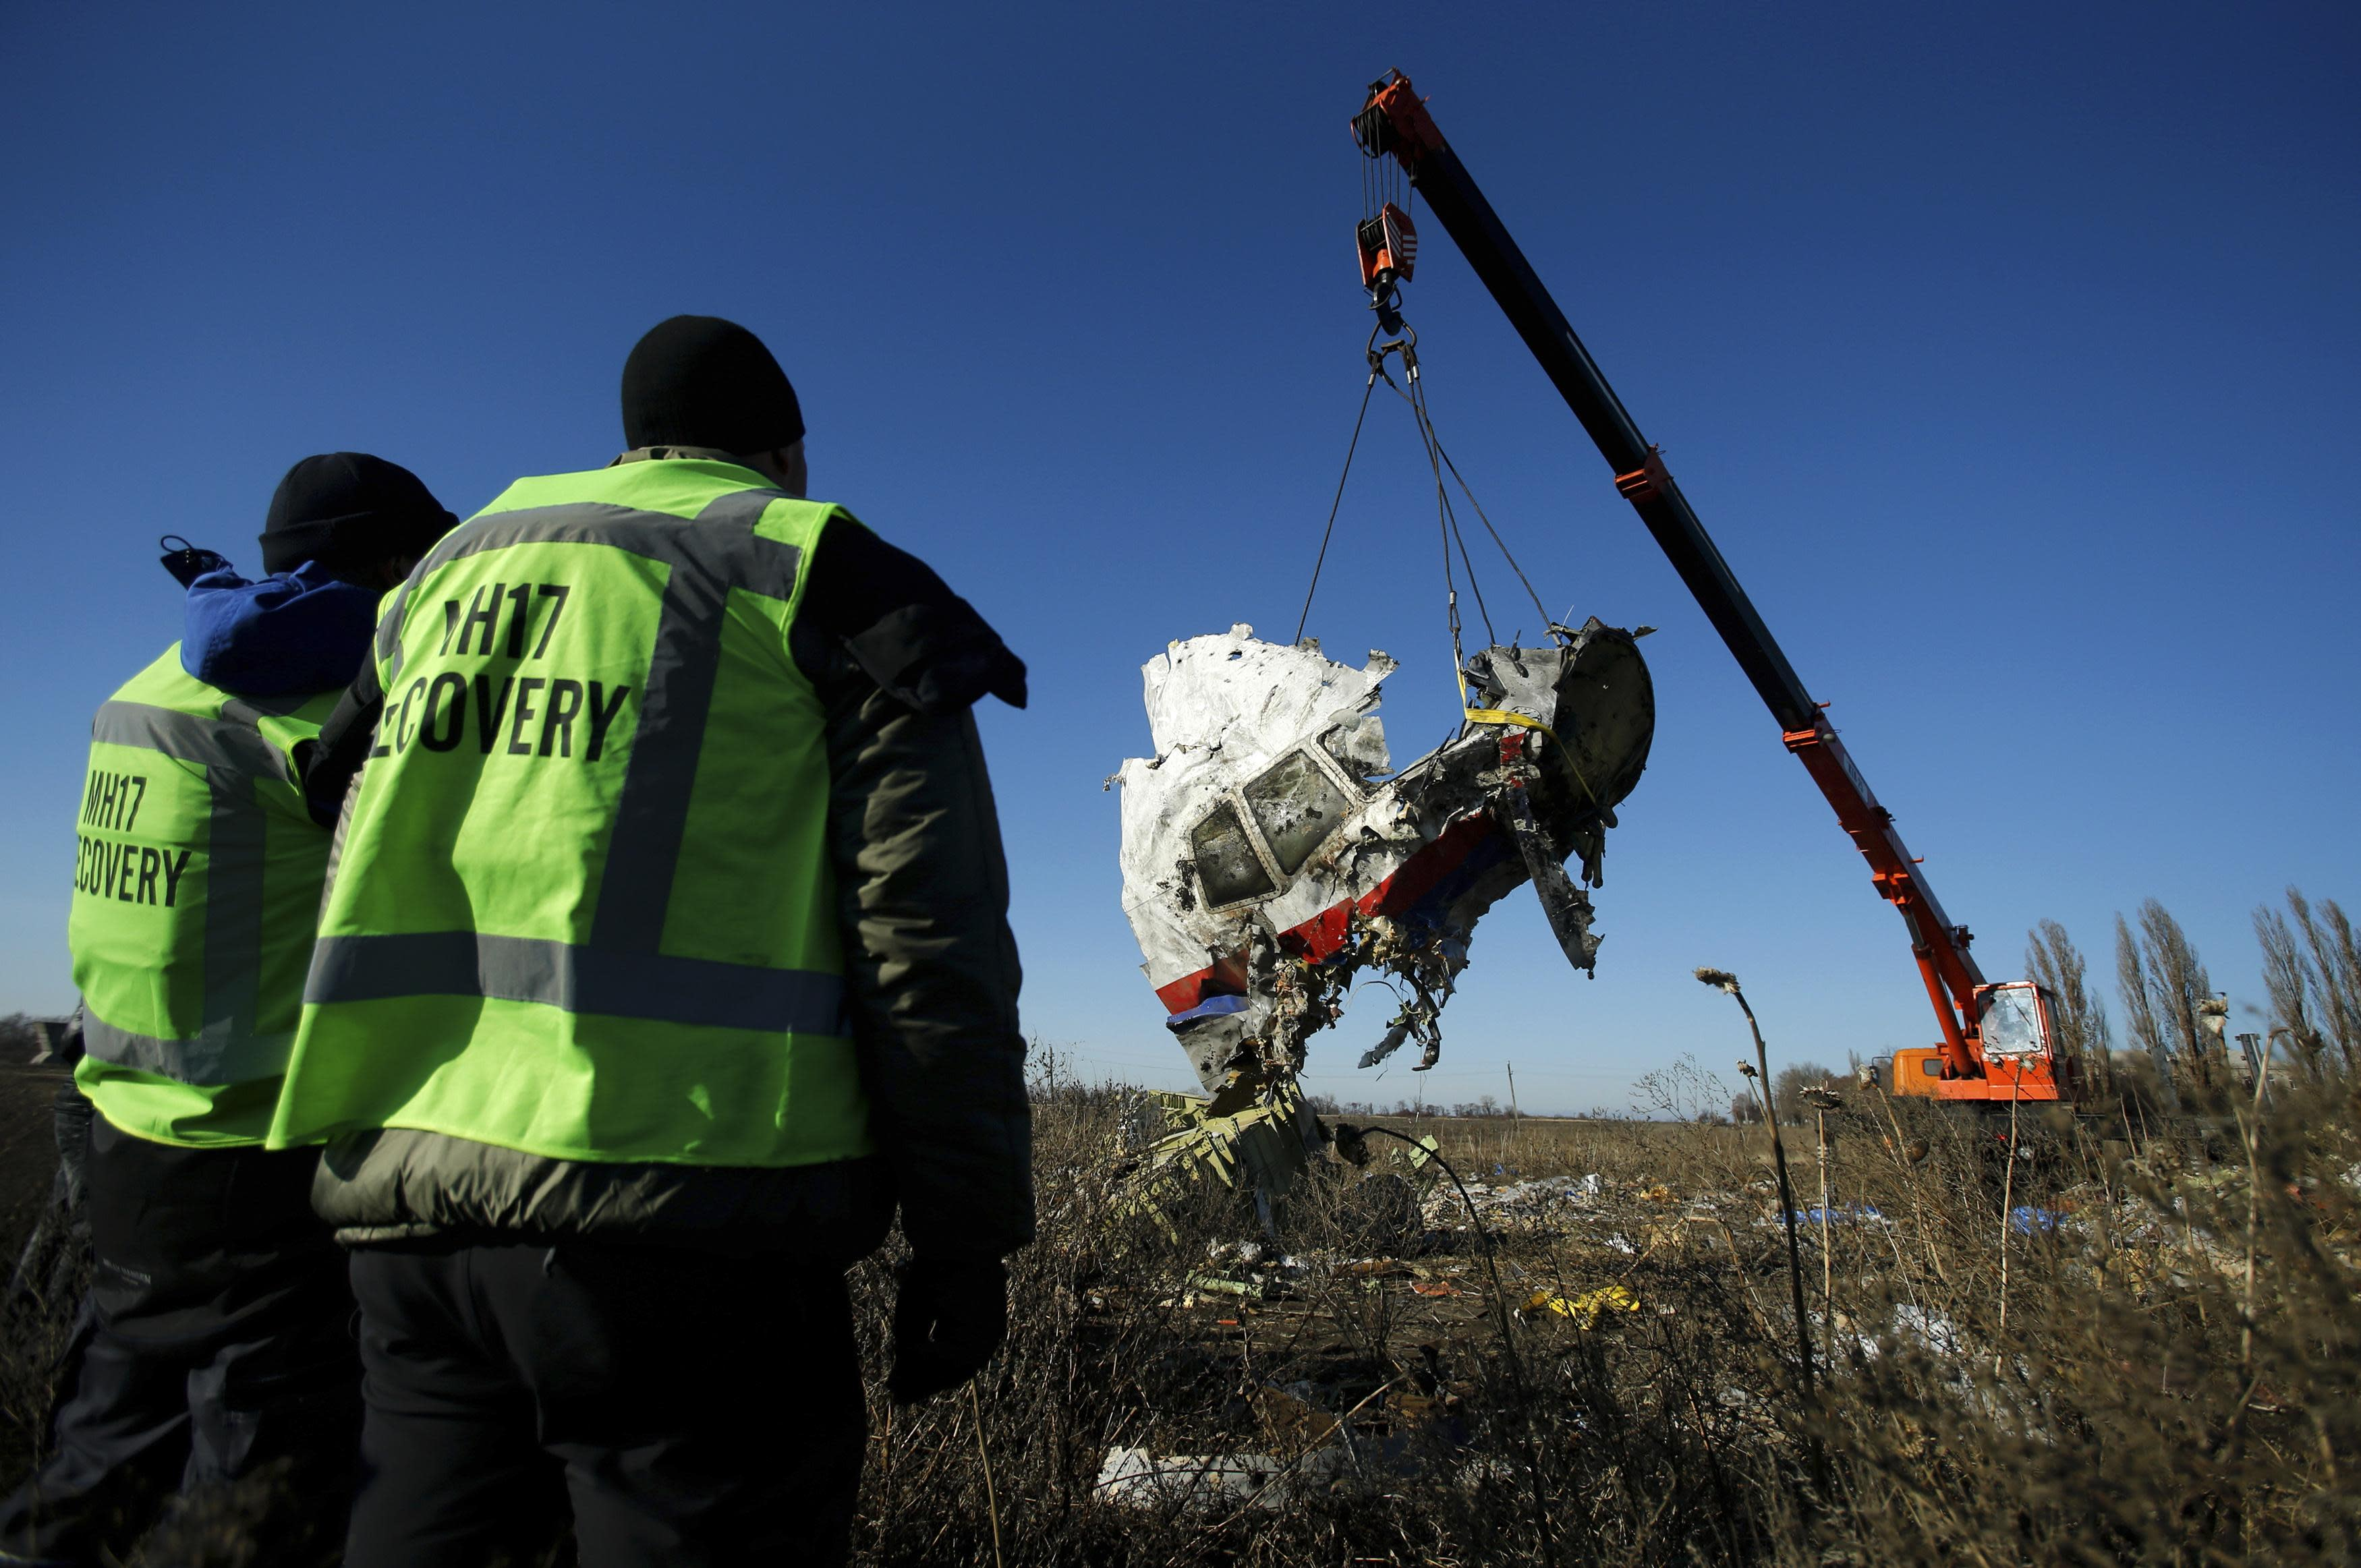 Russian missile maker: MH17 shot down by Ukrainian missile